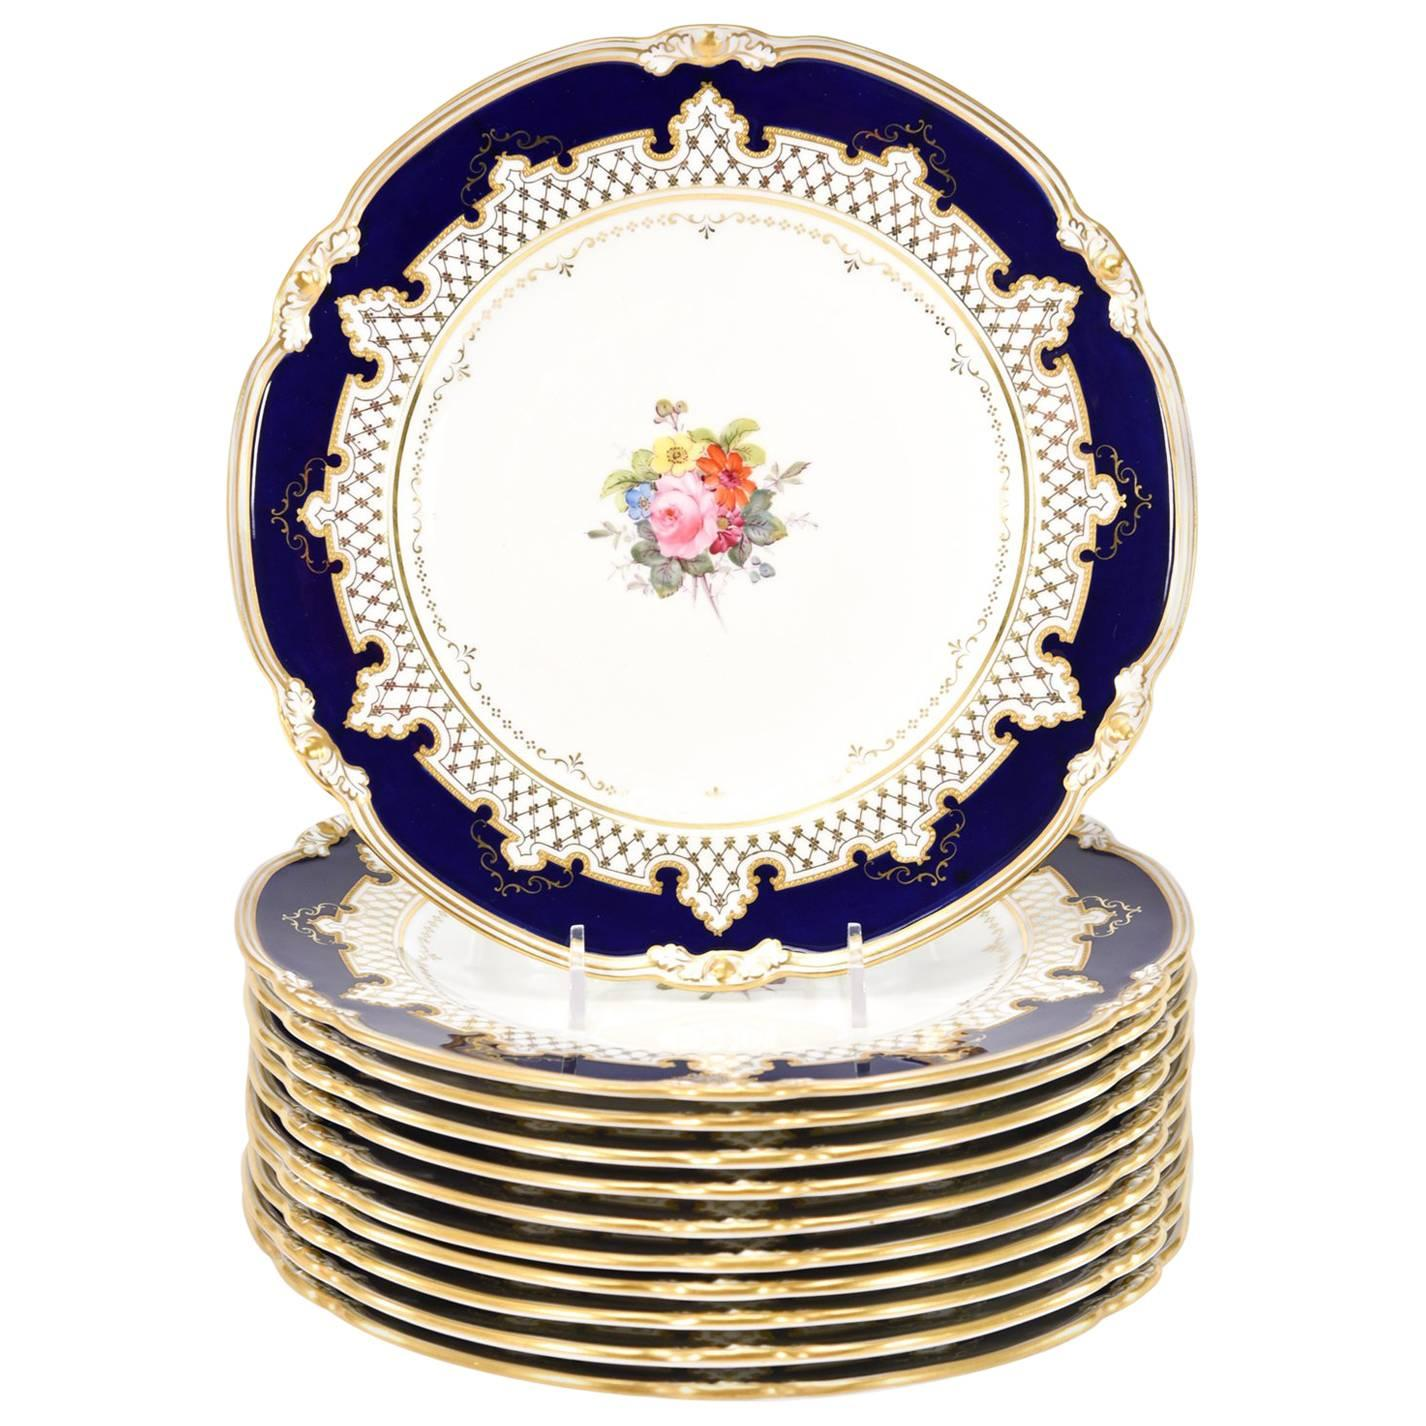 Royal Crown Derby Dessert Service with Cobalt Blue, Gold & Hand-Painted Flowers